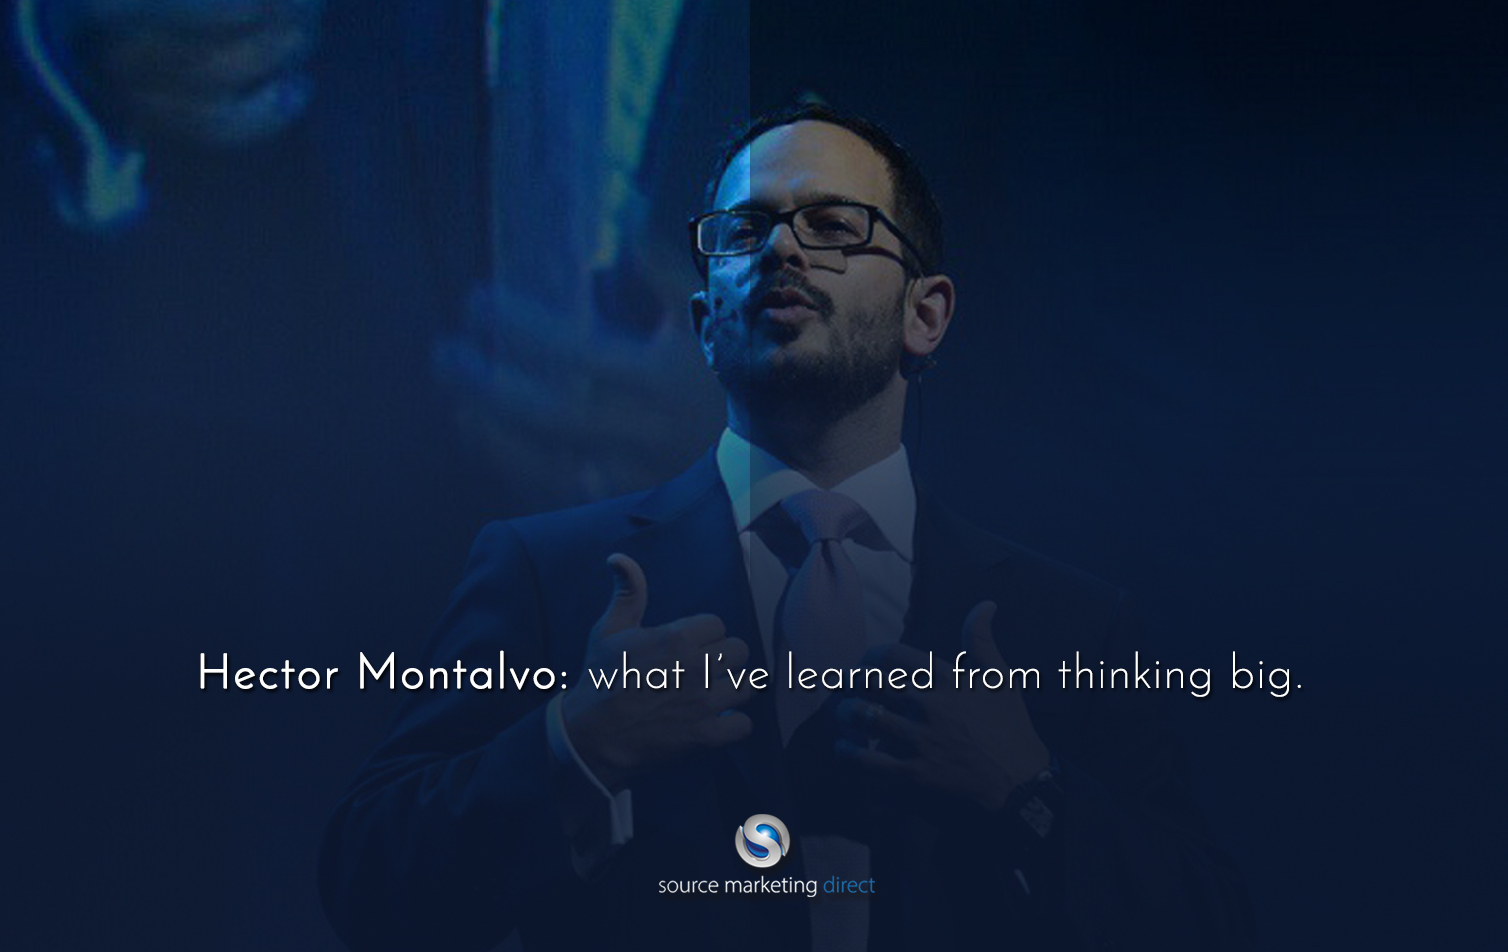 Hector Montalvo: what I've learned from thinking big